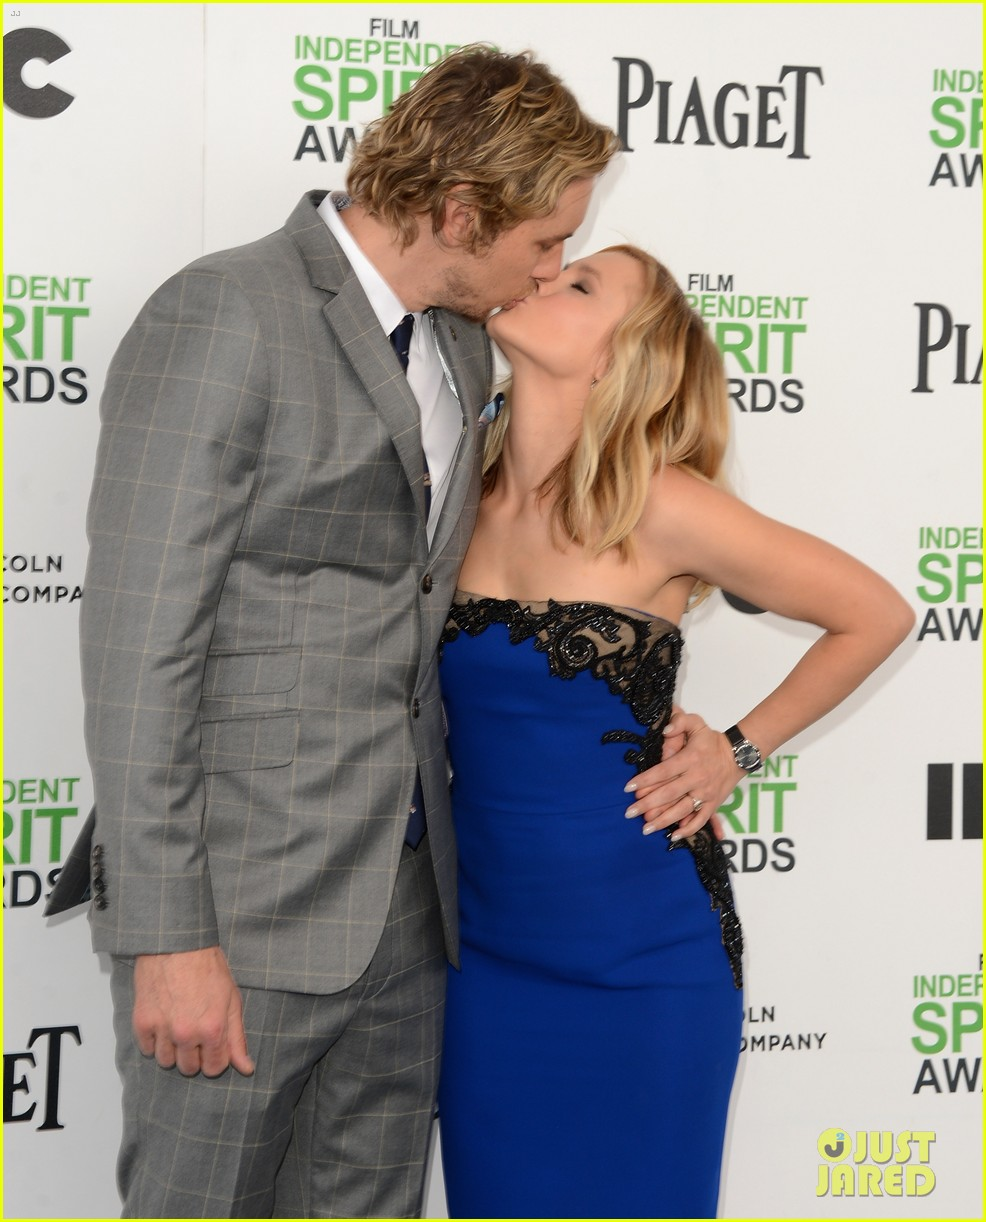 kristen bell dax shepard share cute kiss at independent spirit awards 2014 02